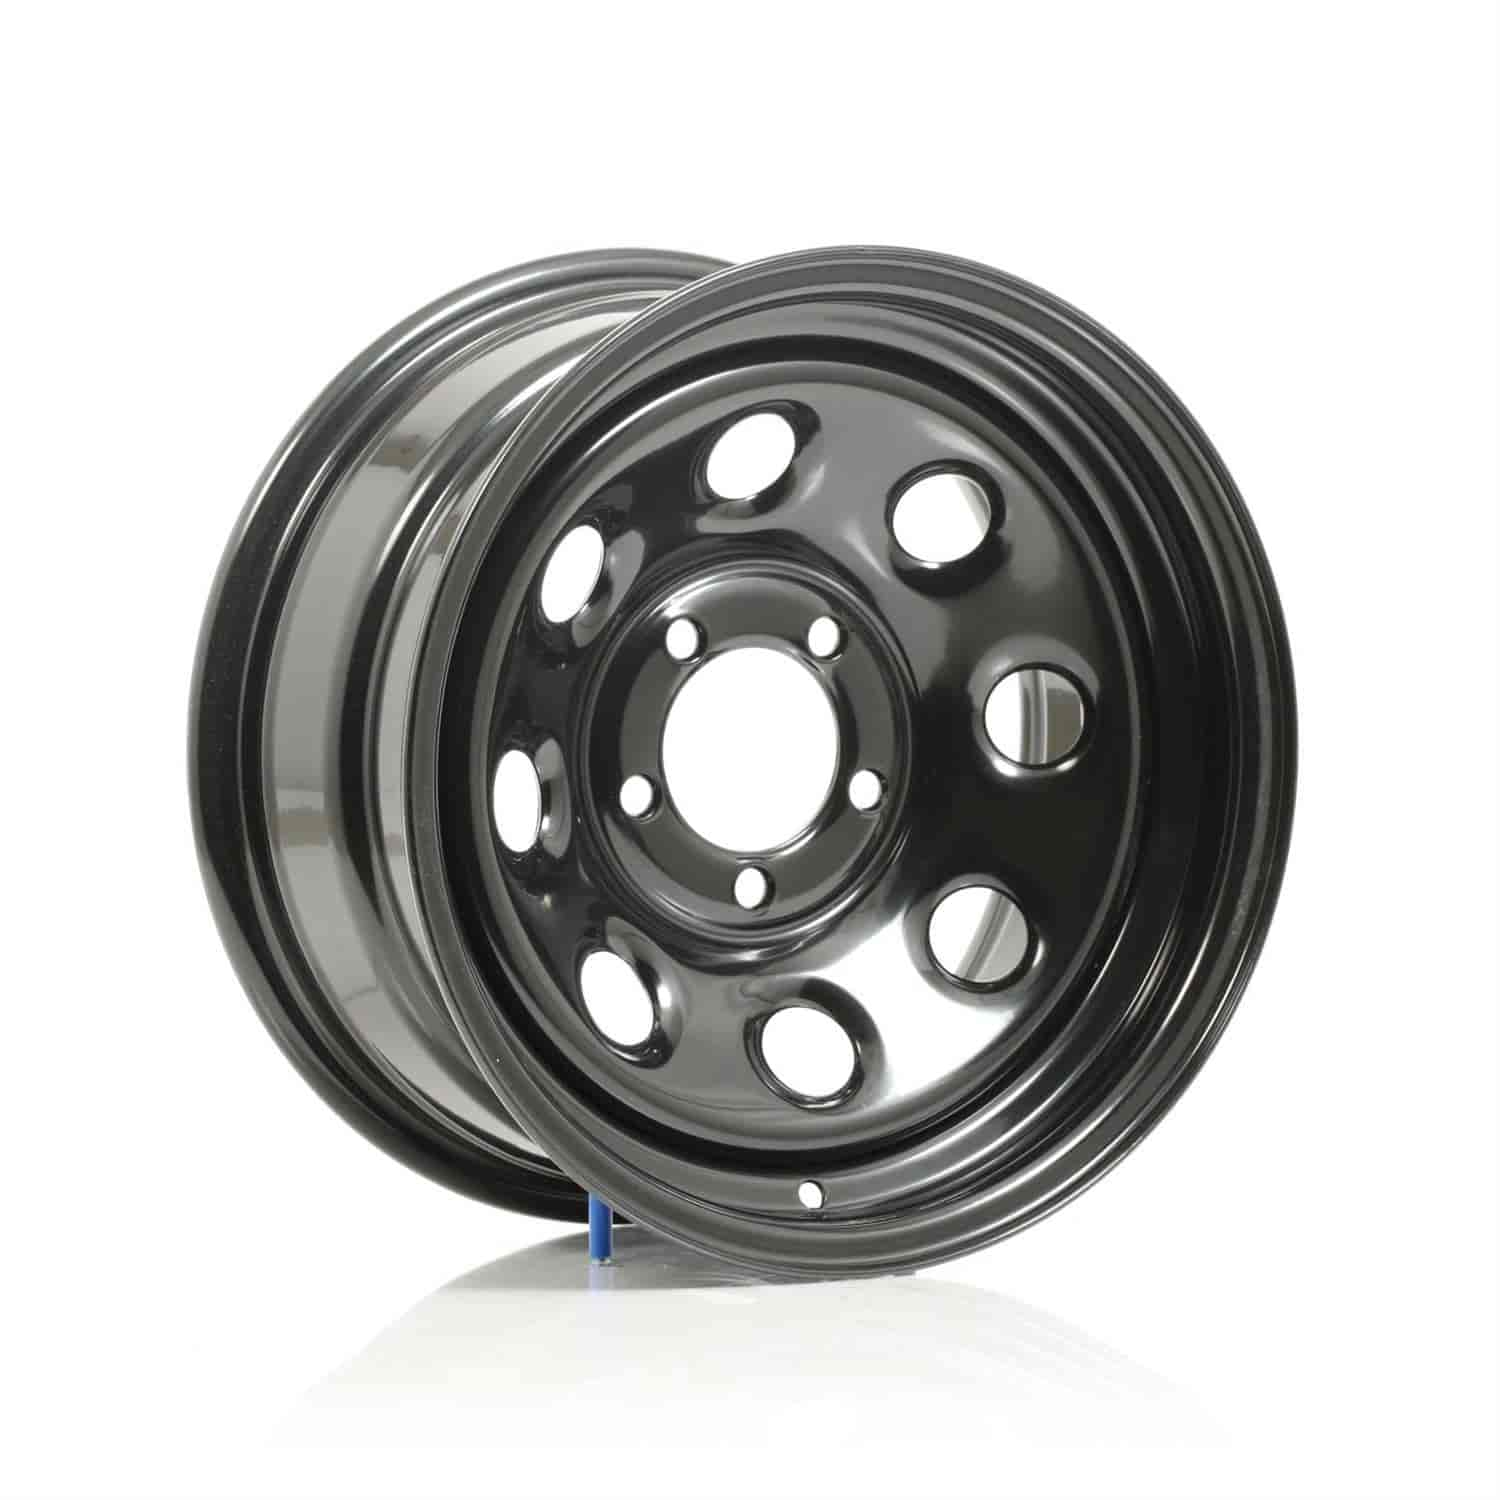 Cragar 3978880 - Cragar Black Soft 8 Wheels